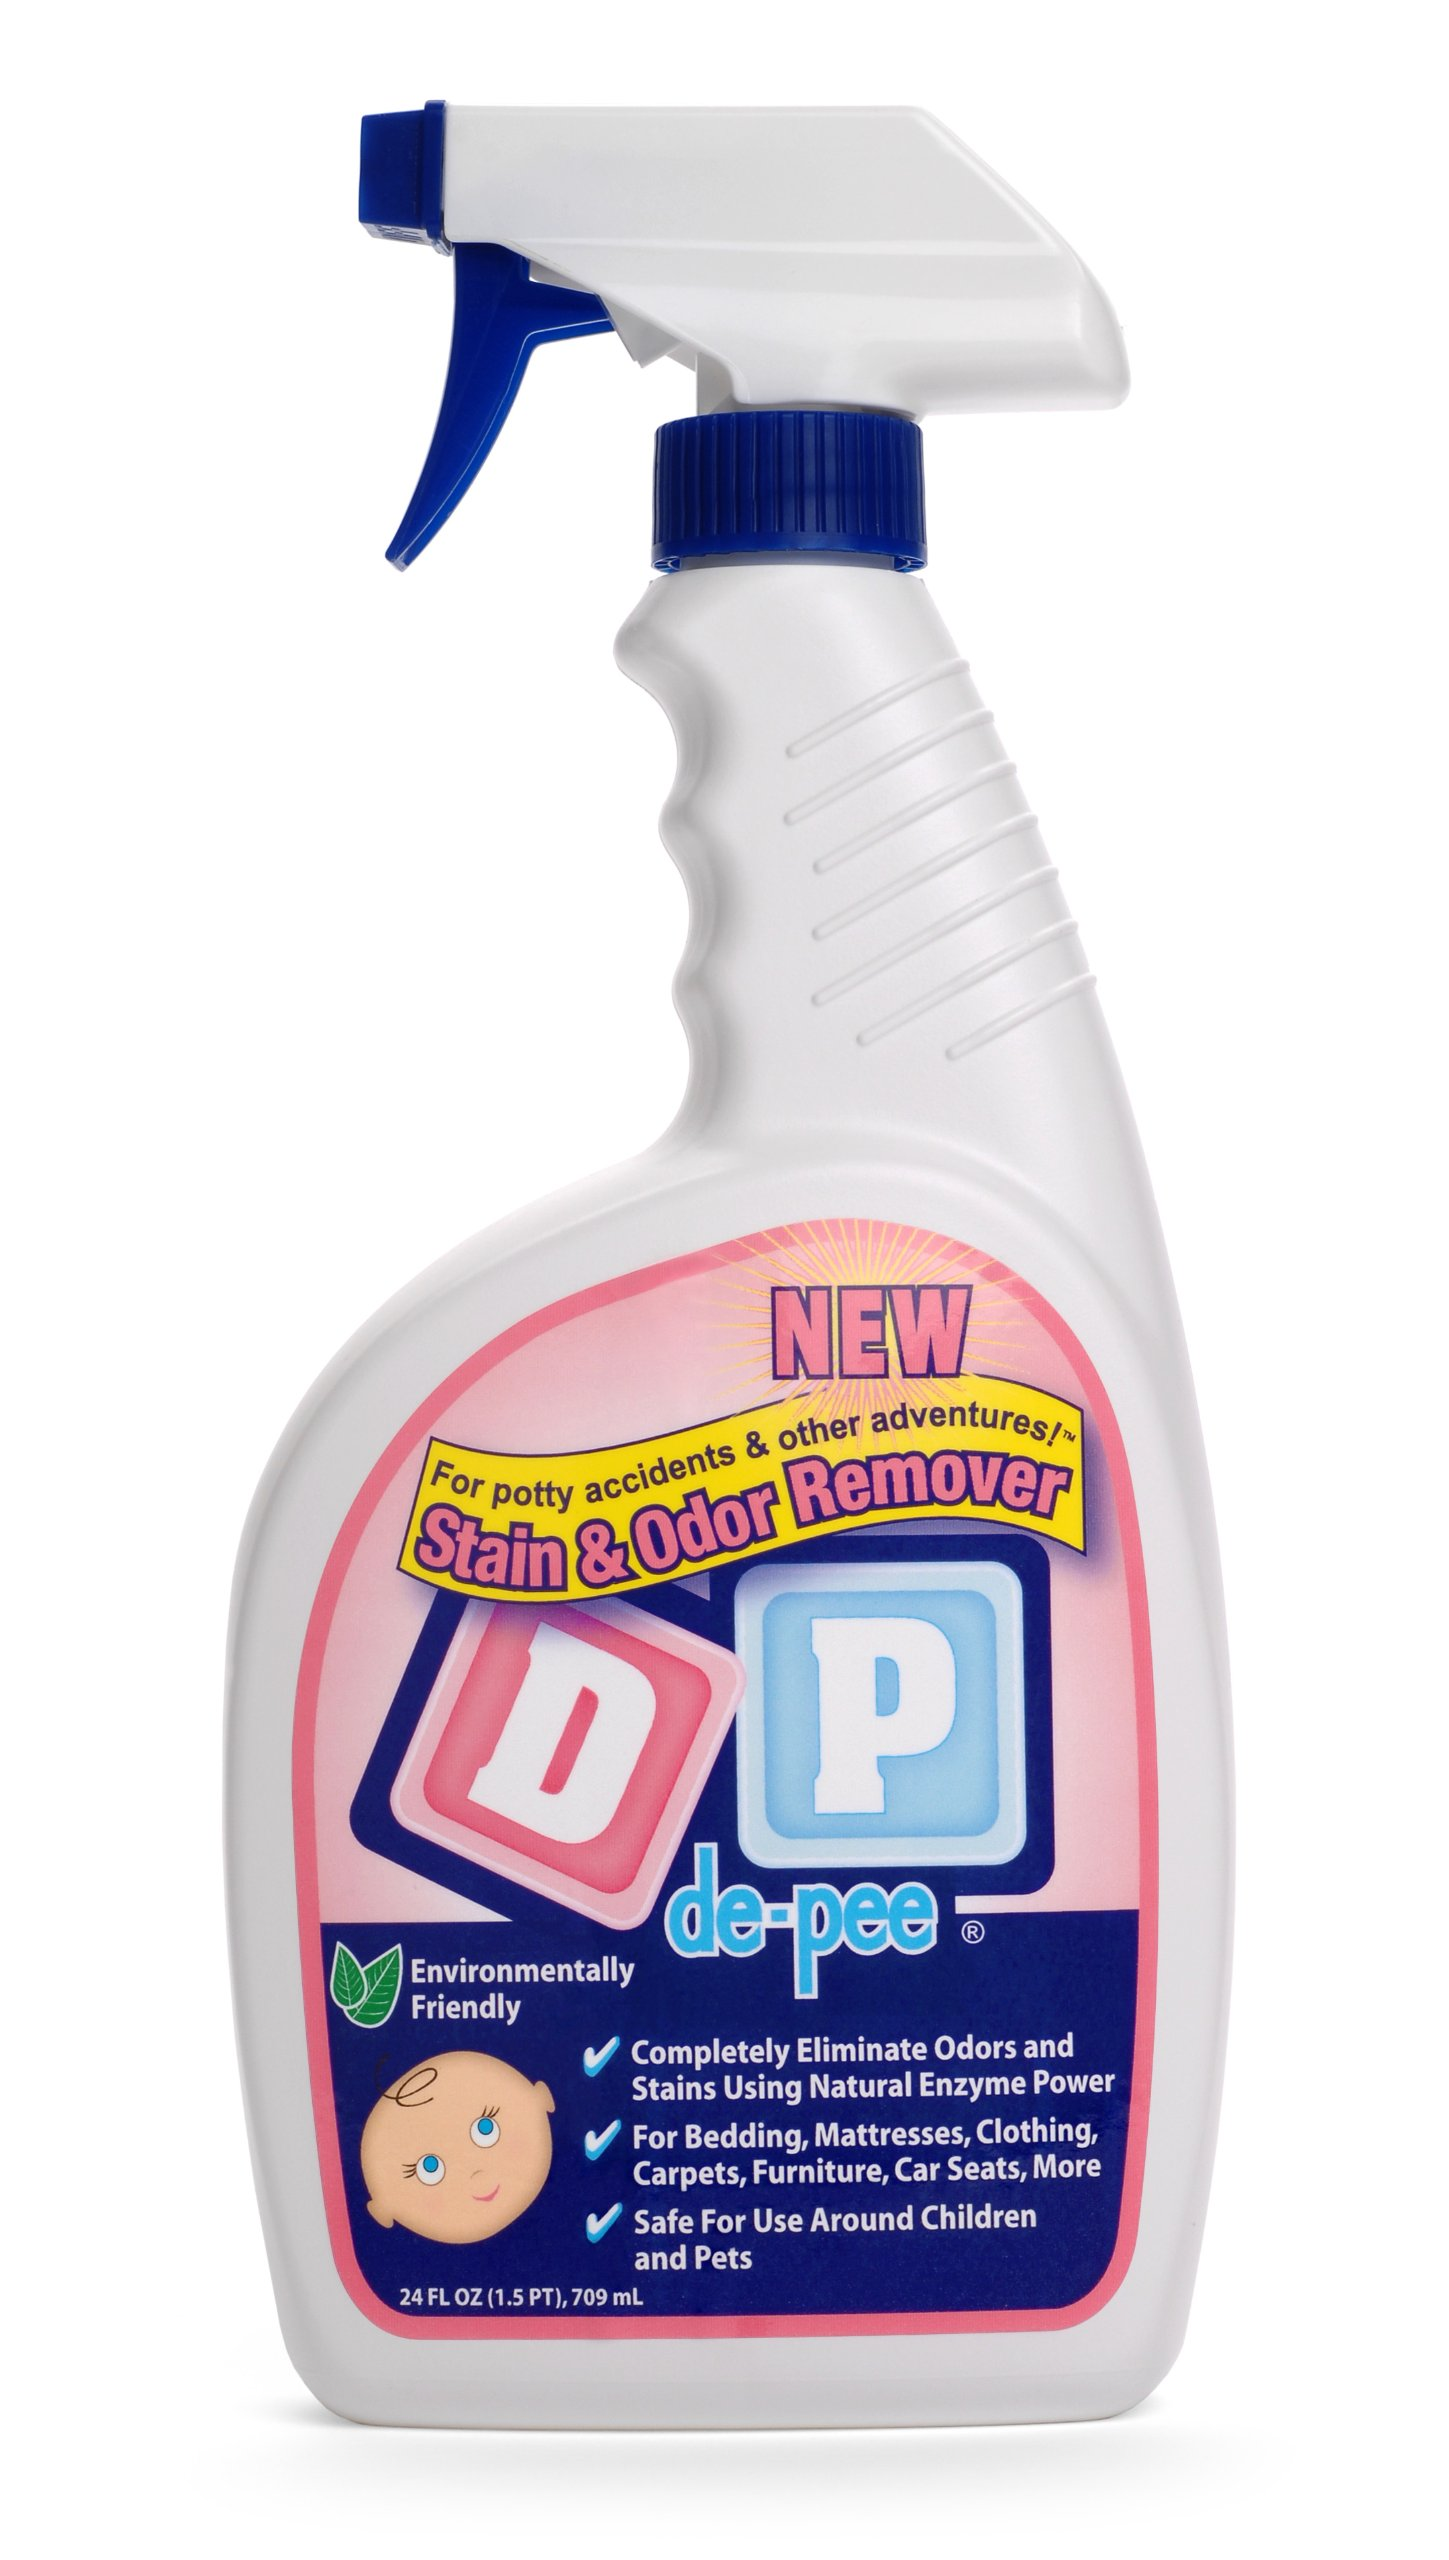 DP (de-pee)® Stain & Odor Remover - 24oz - For Potty Accidents & Other Adventures! - Environmentally Friendly